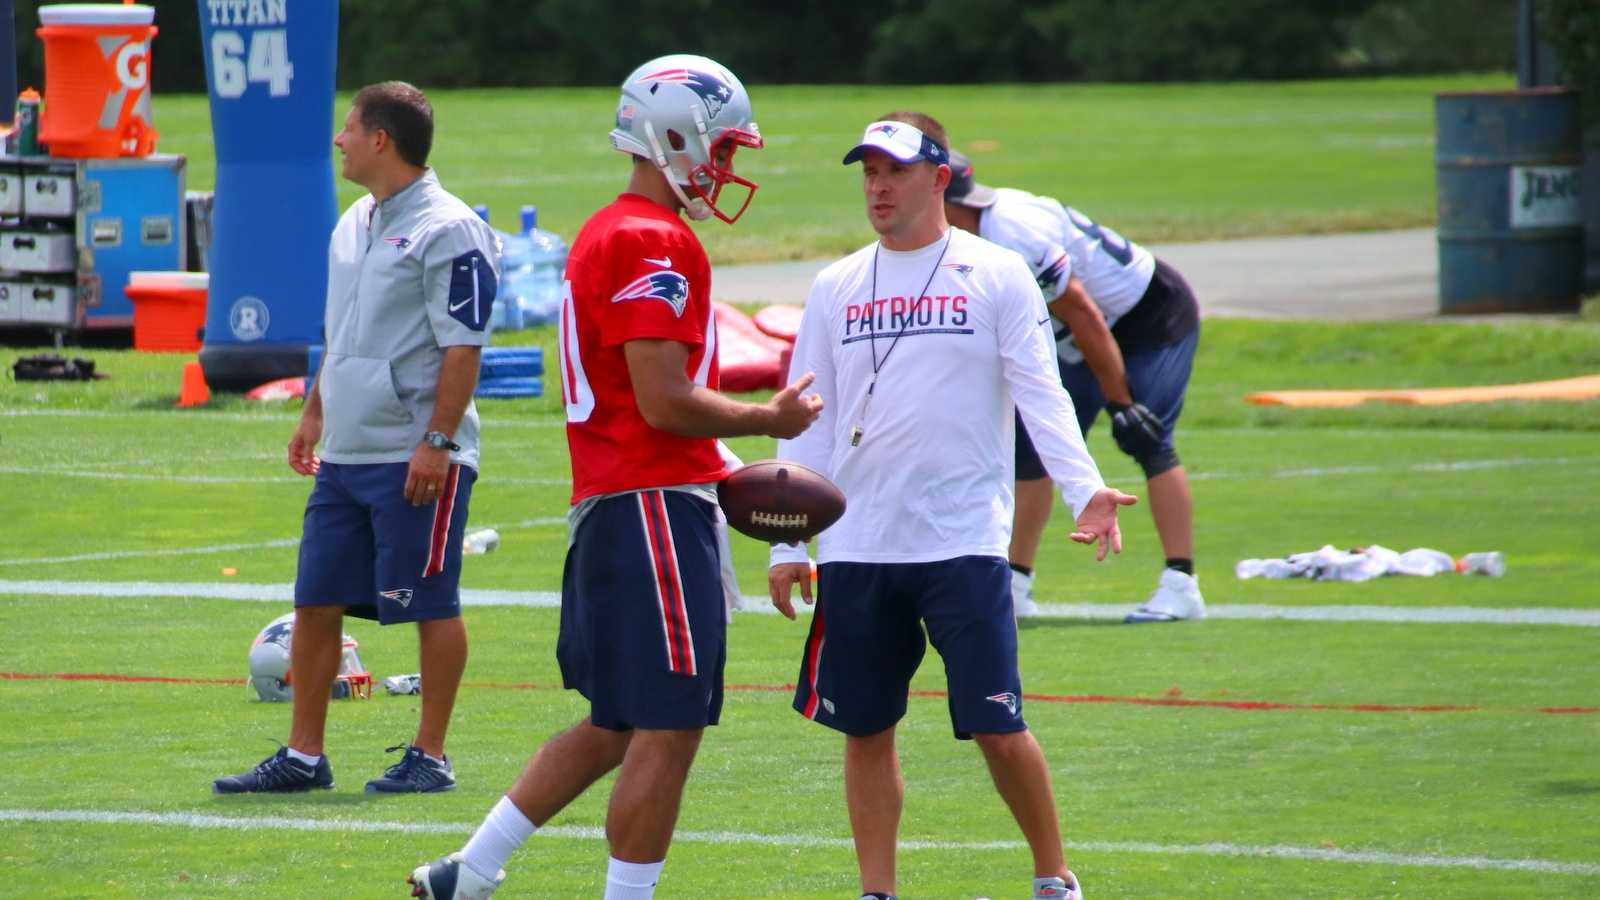 Offensive coordinator Josh McDaniels speaks with quarterback Jimmy Garoppolo after day 1 of Patriots training camp.